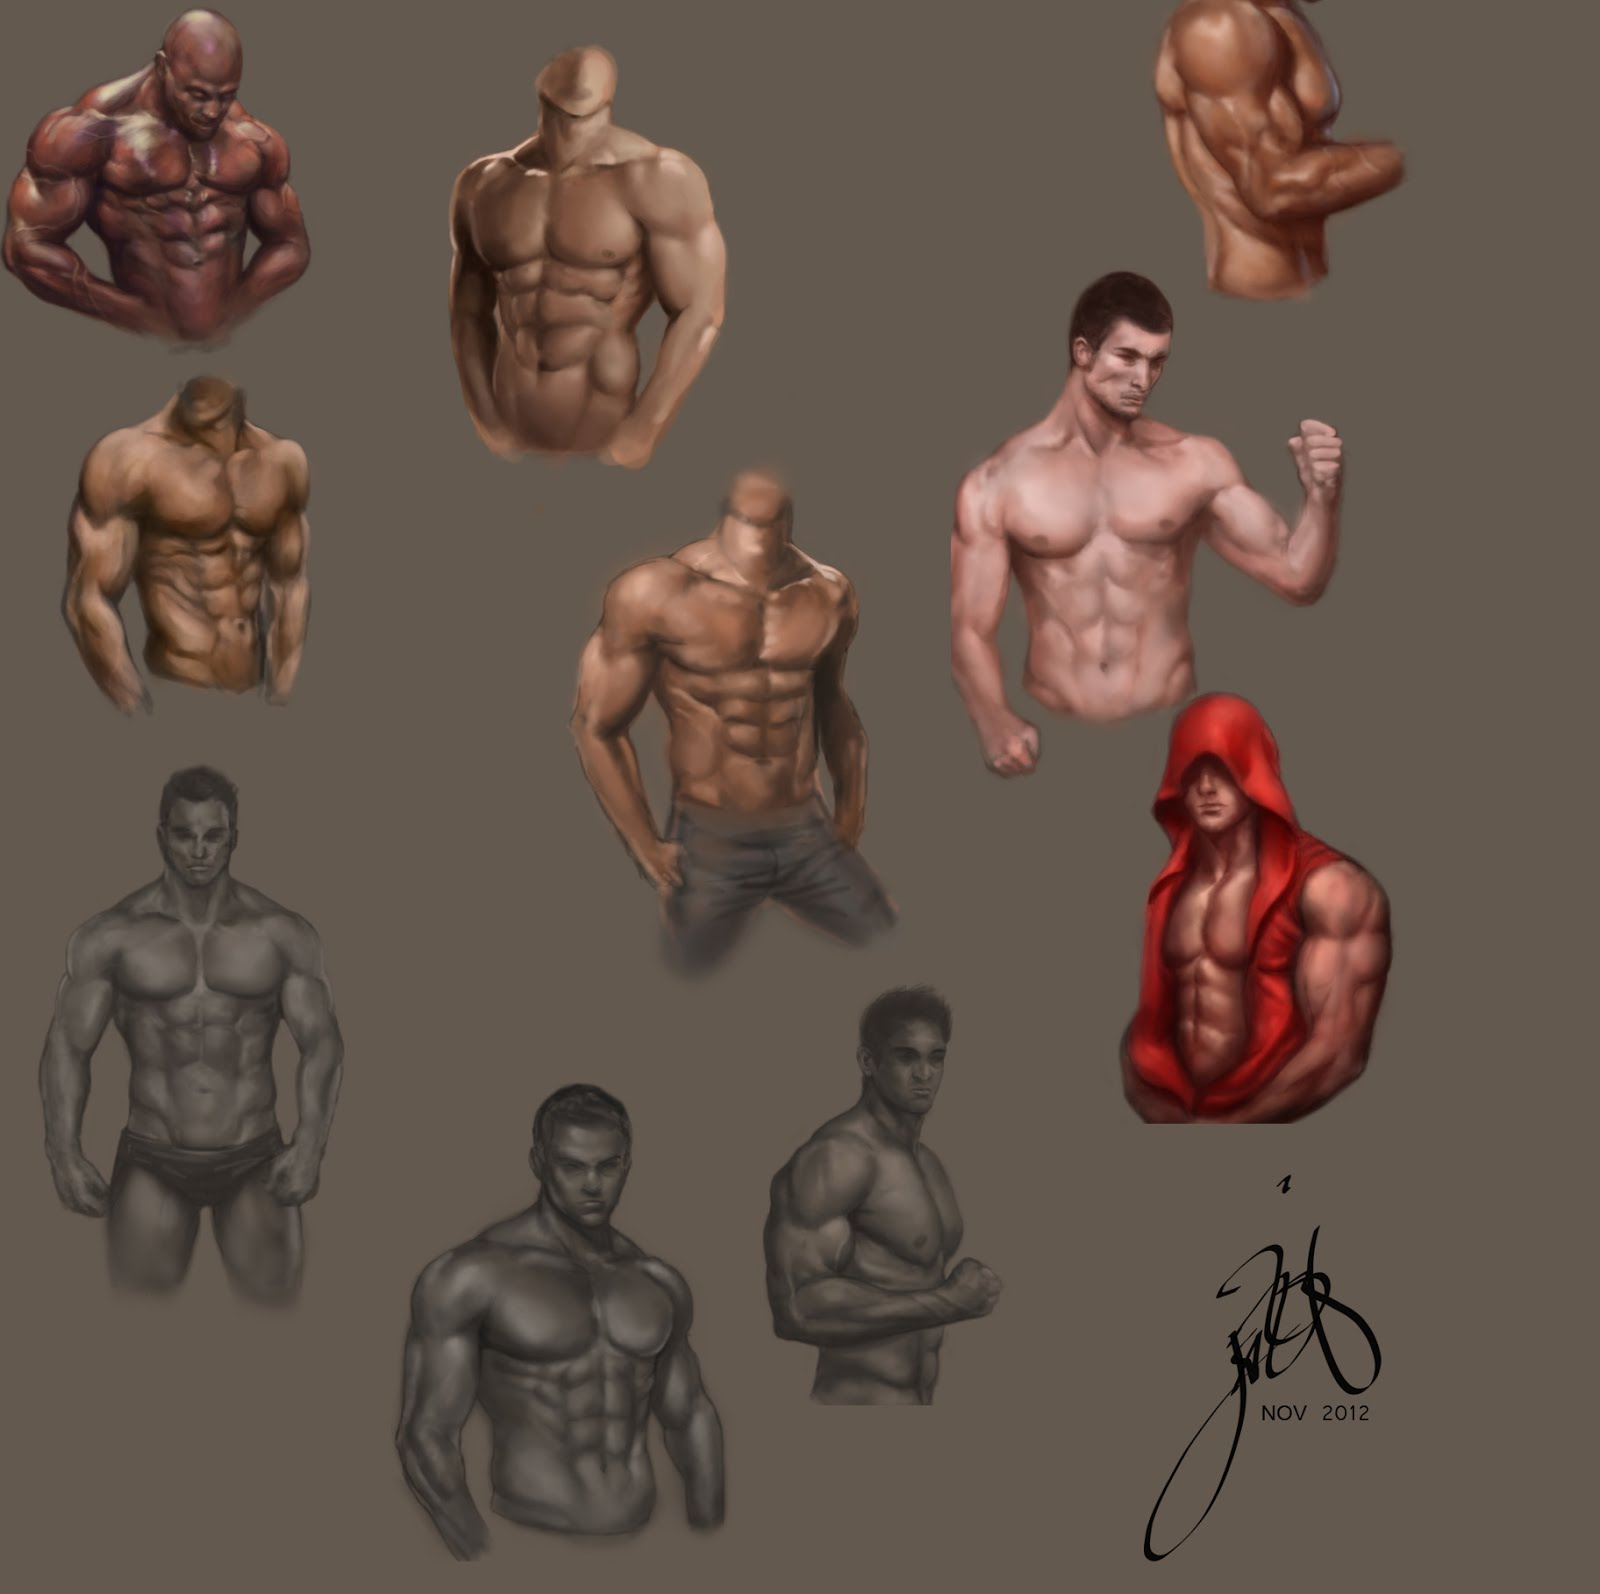 Doodles and Noodles #4 : Male Anatomy, and Lighting Studies | Art of ...